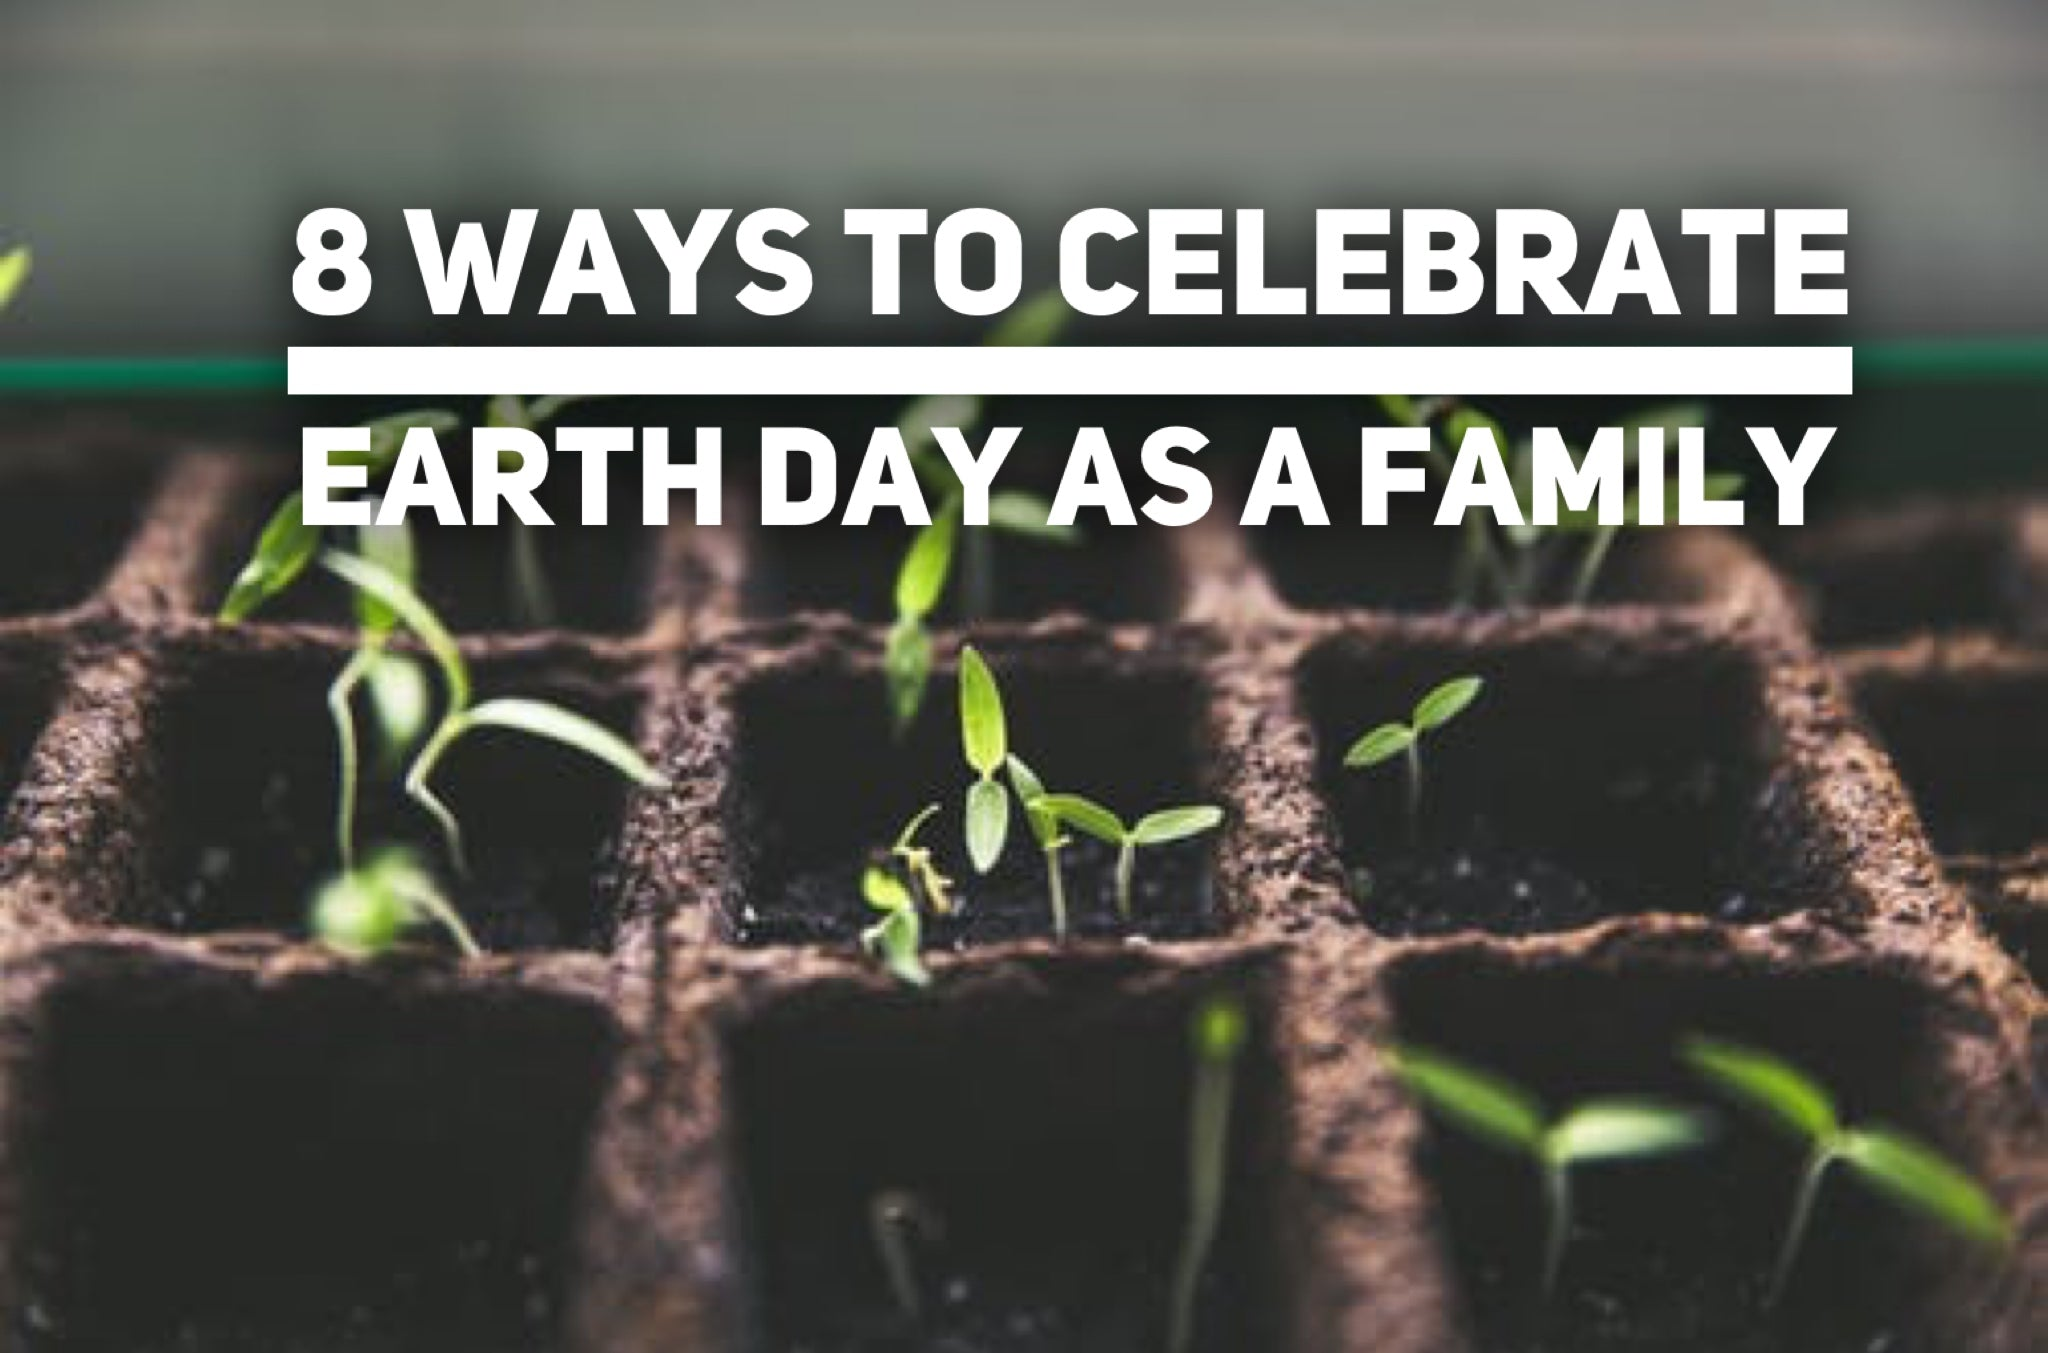 8 Ways to Celebrate Earth Day as a Family